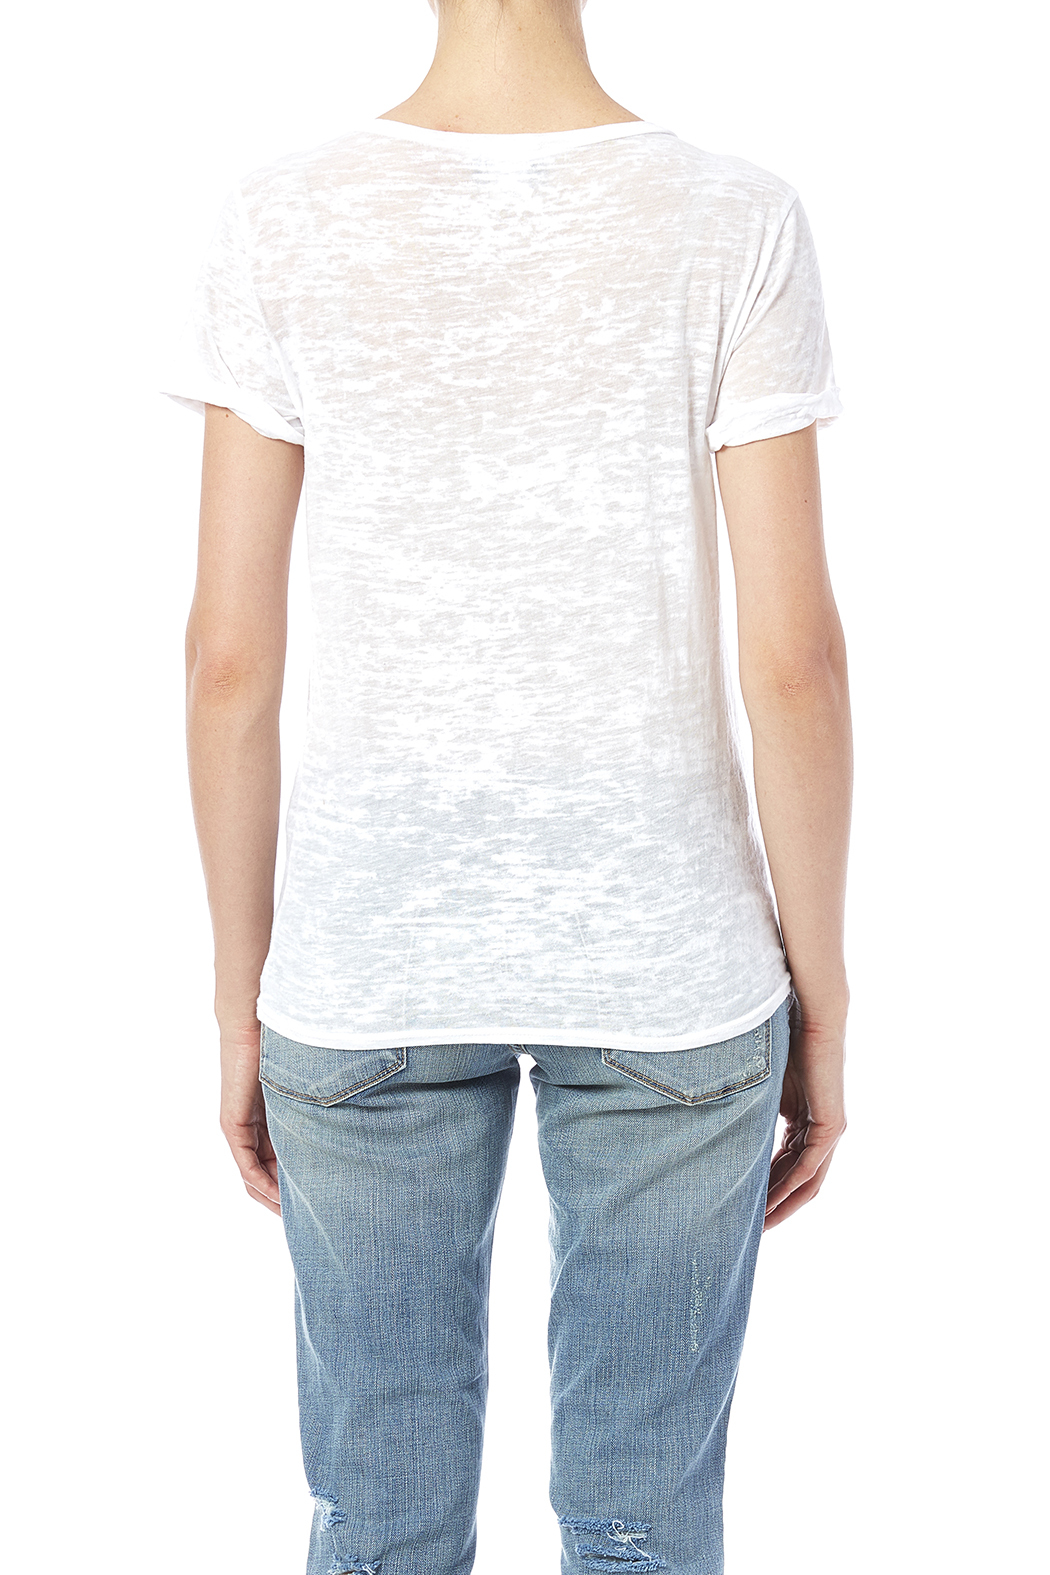 Blank Bella + Canvas Up All Night Tee - Back Cropped Image